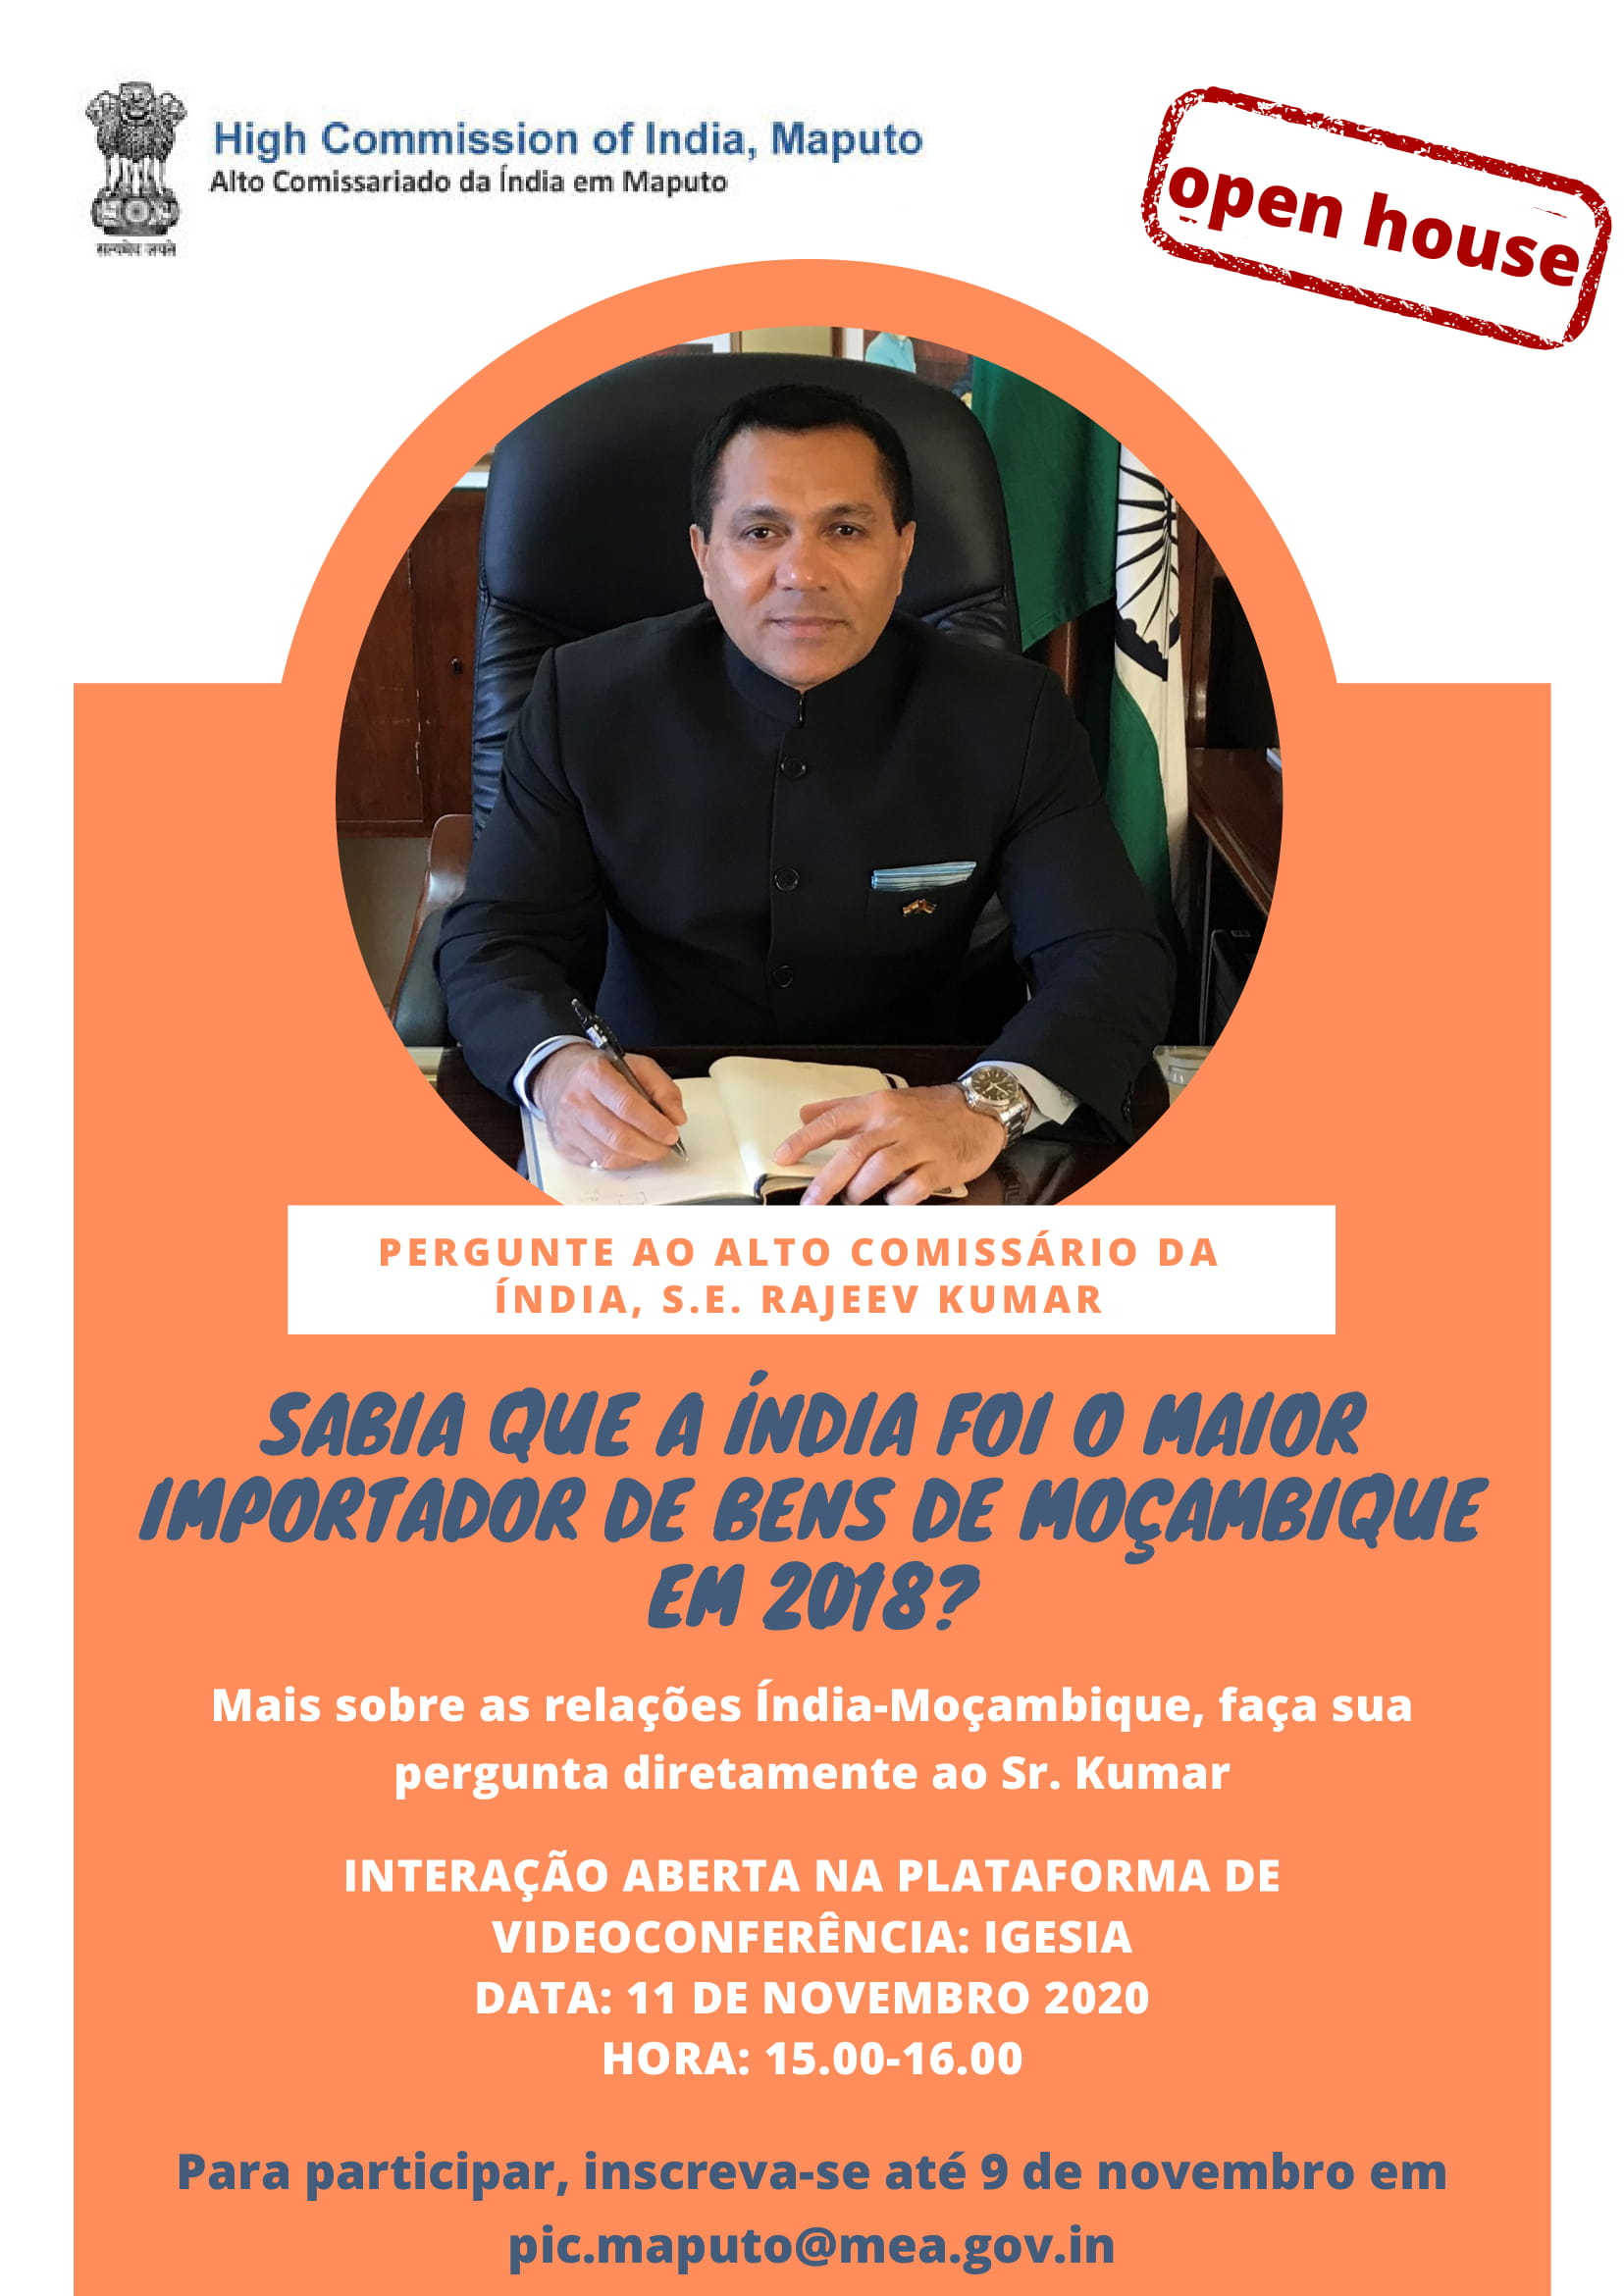 On 11th November, 2020 from 15:00h 16:00h, ask your questions on India-Mozmbique relations directly to High Commissioner of India, H.E. Rajeev Kumar.